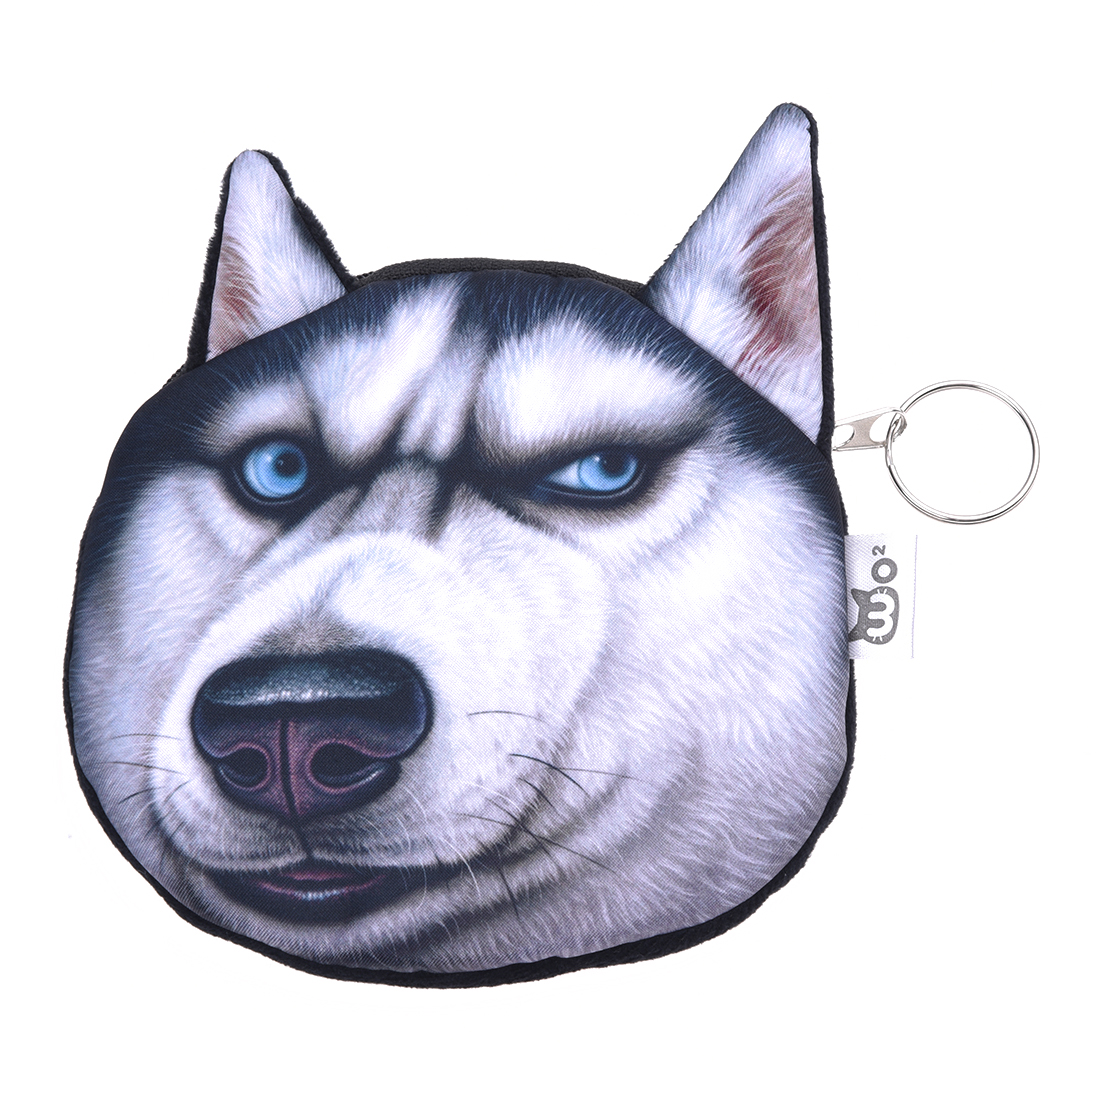 5 pcs of Cute Lovely 3D Dog Face Zipper Case Coin Girl Purse Wallet Makeup Bag Pouch Huskies